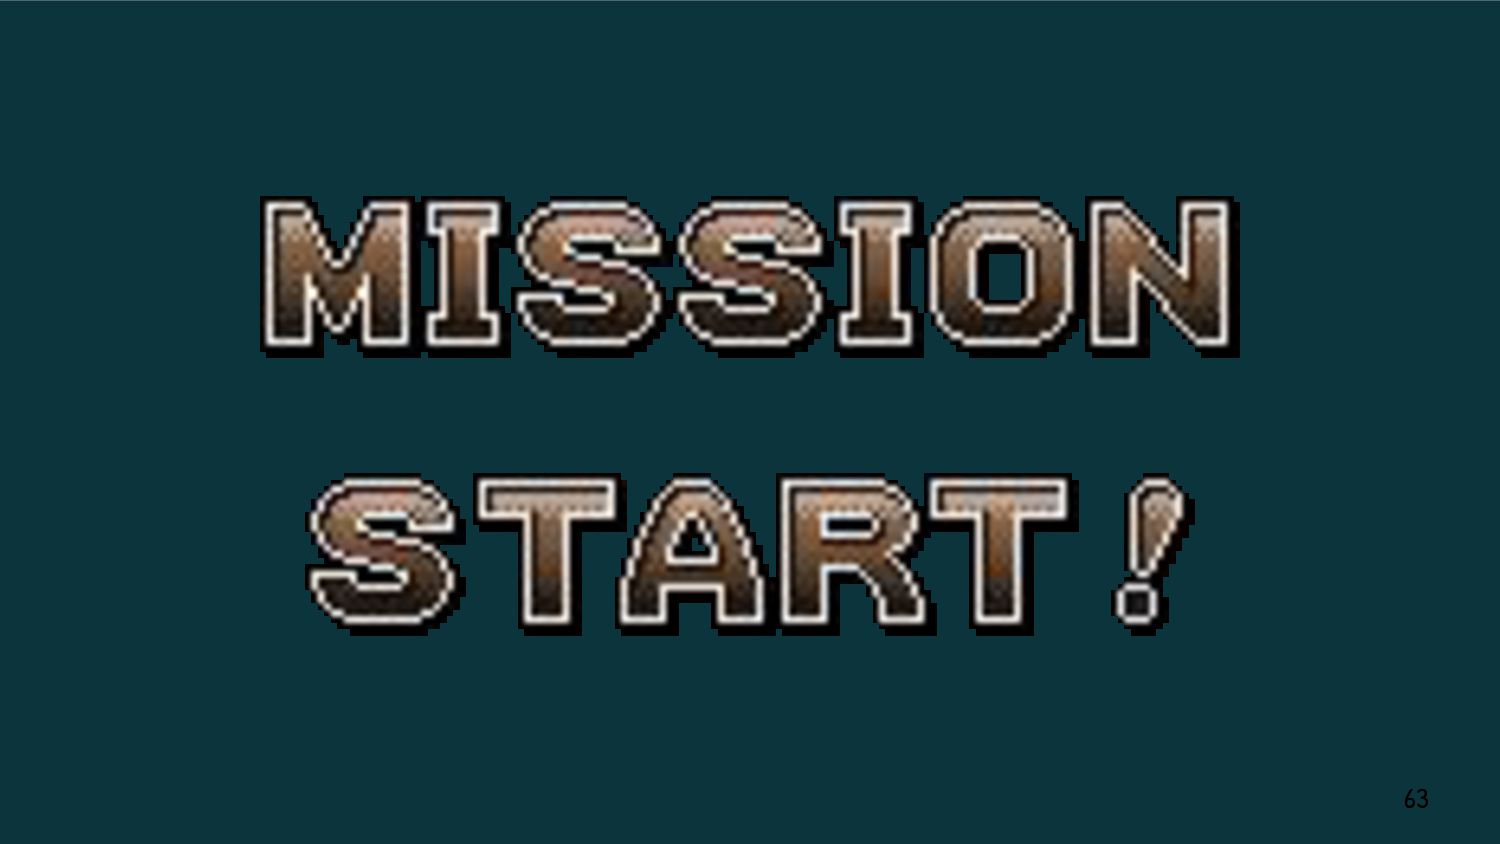 From nothing, generate 2 files with the same md5...